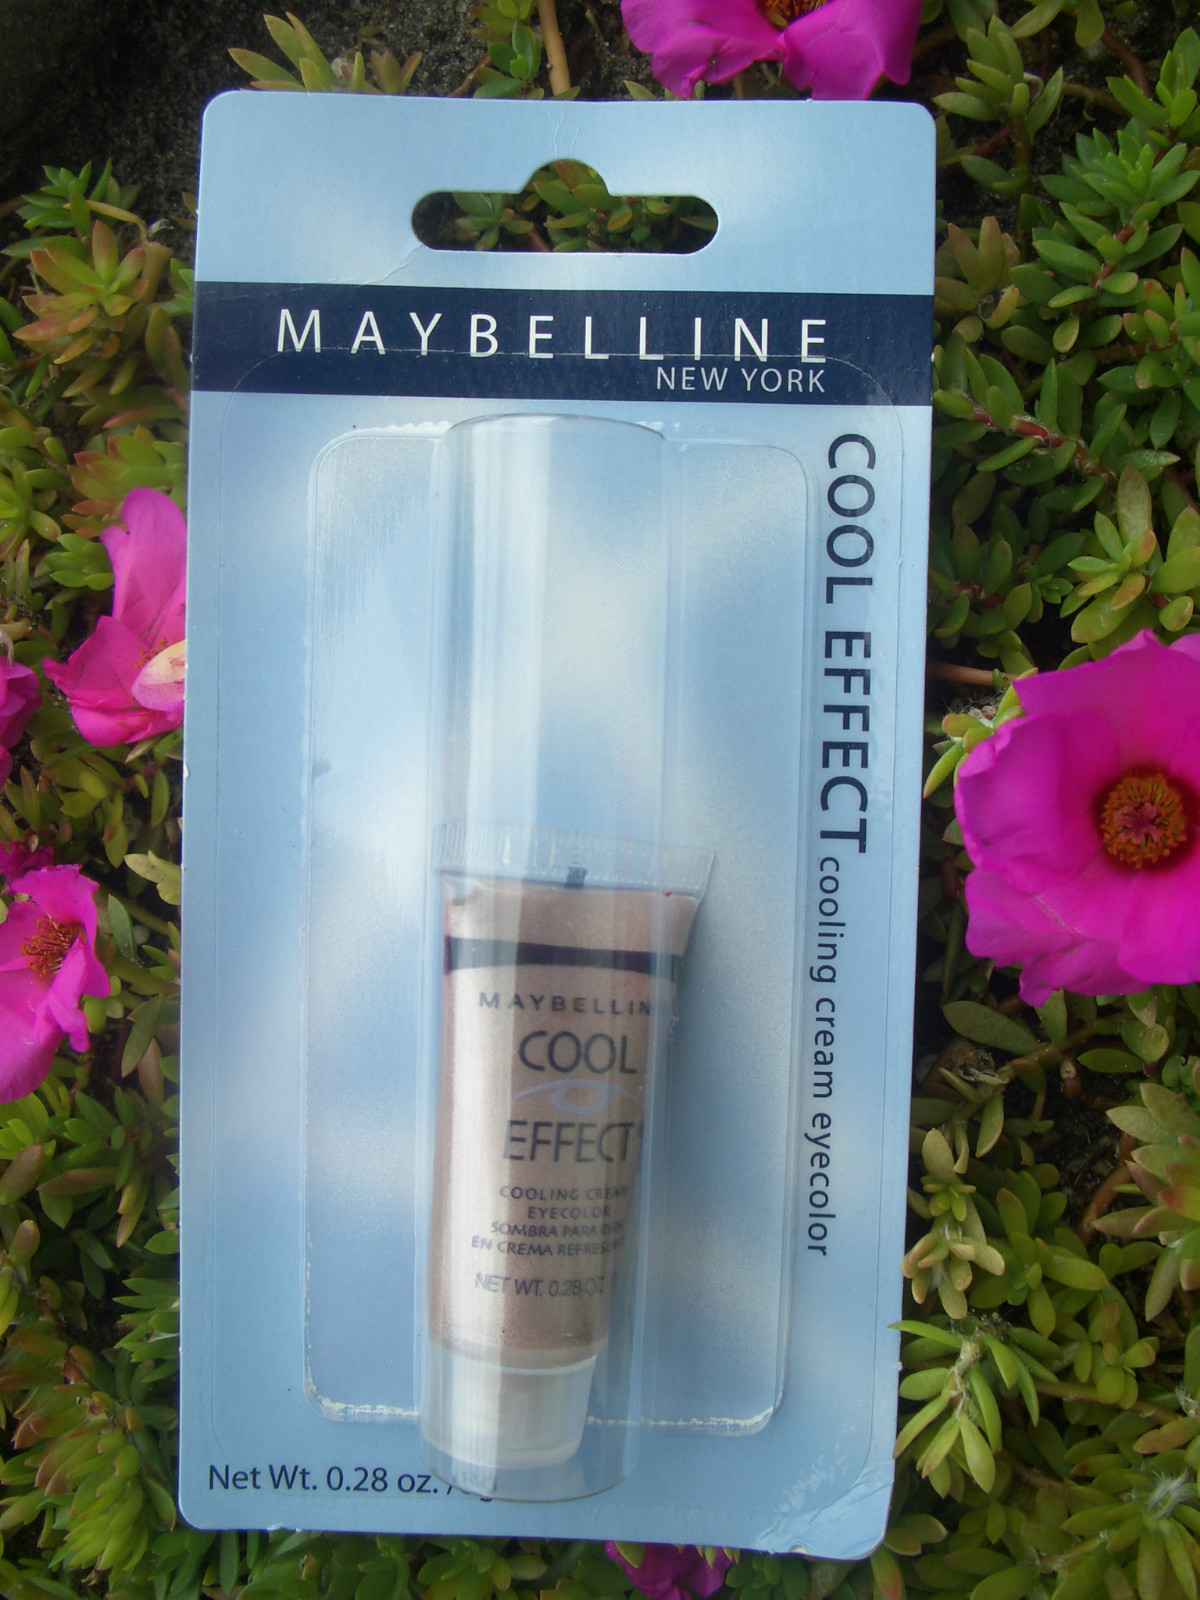 Cool Effect Cooling Cream Eyecolor Maybelline